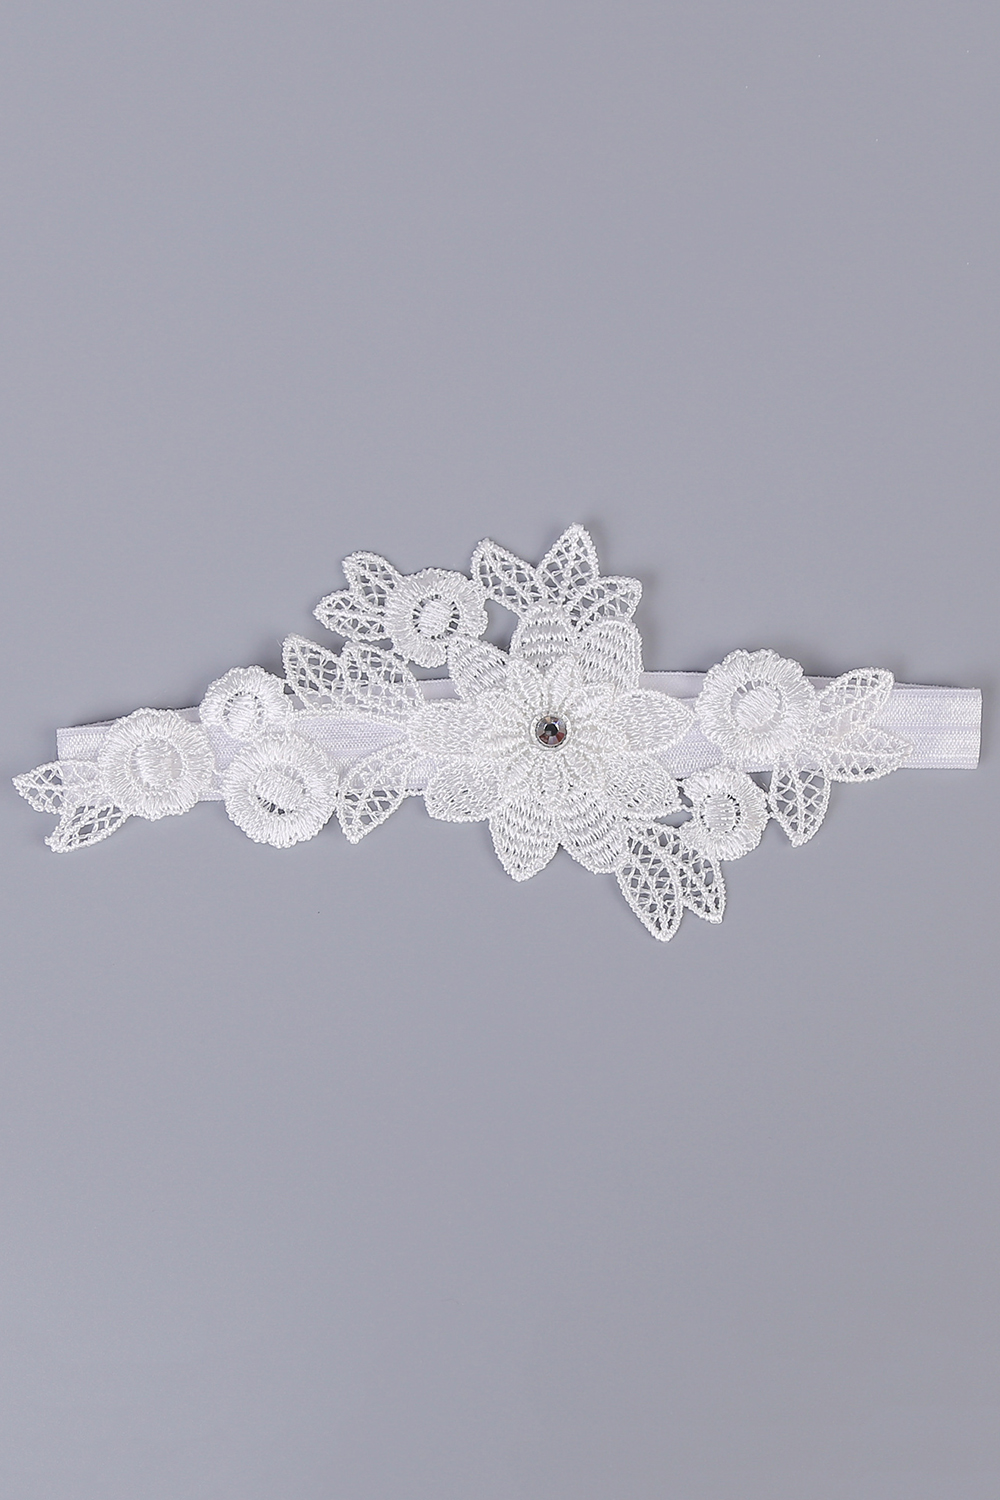 Fast Deliver Wedding Gloves 2018 Hot-selling Vintage Lace Bridal Leg Garter With Blue Rhinestones Ivory Appliques Wedding Accessories Fi034 Weddings & Events